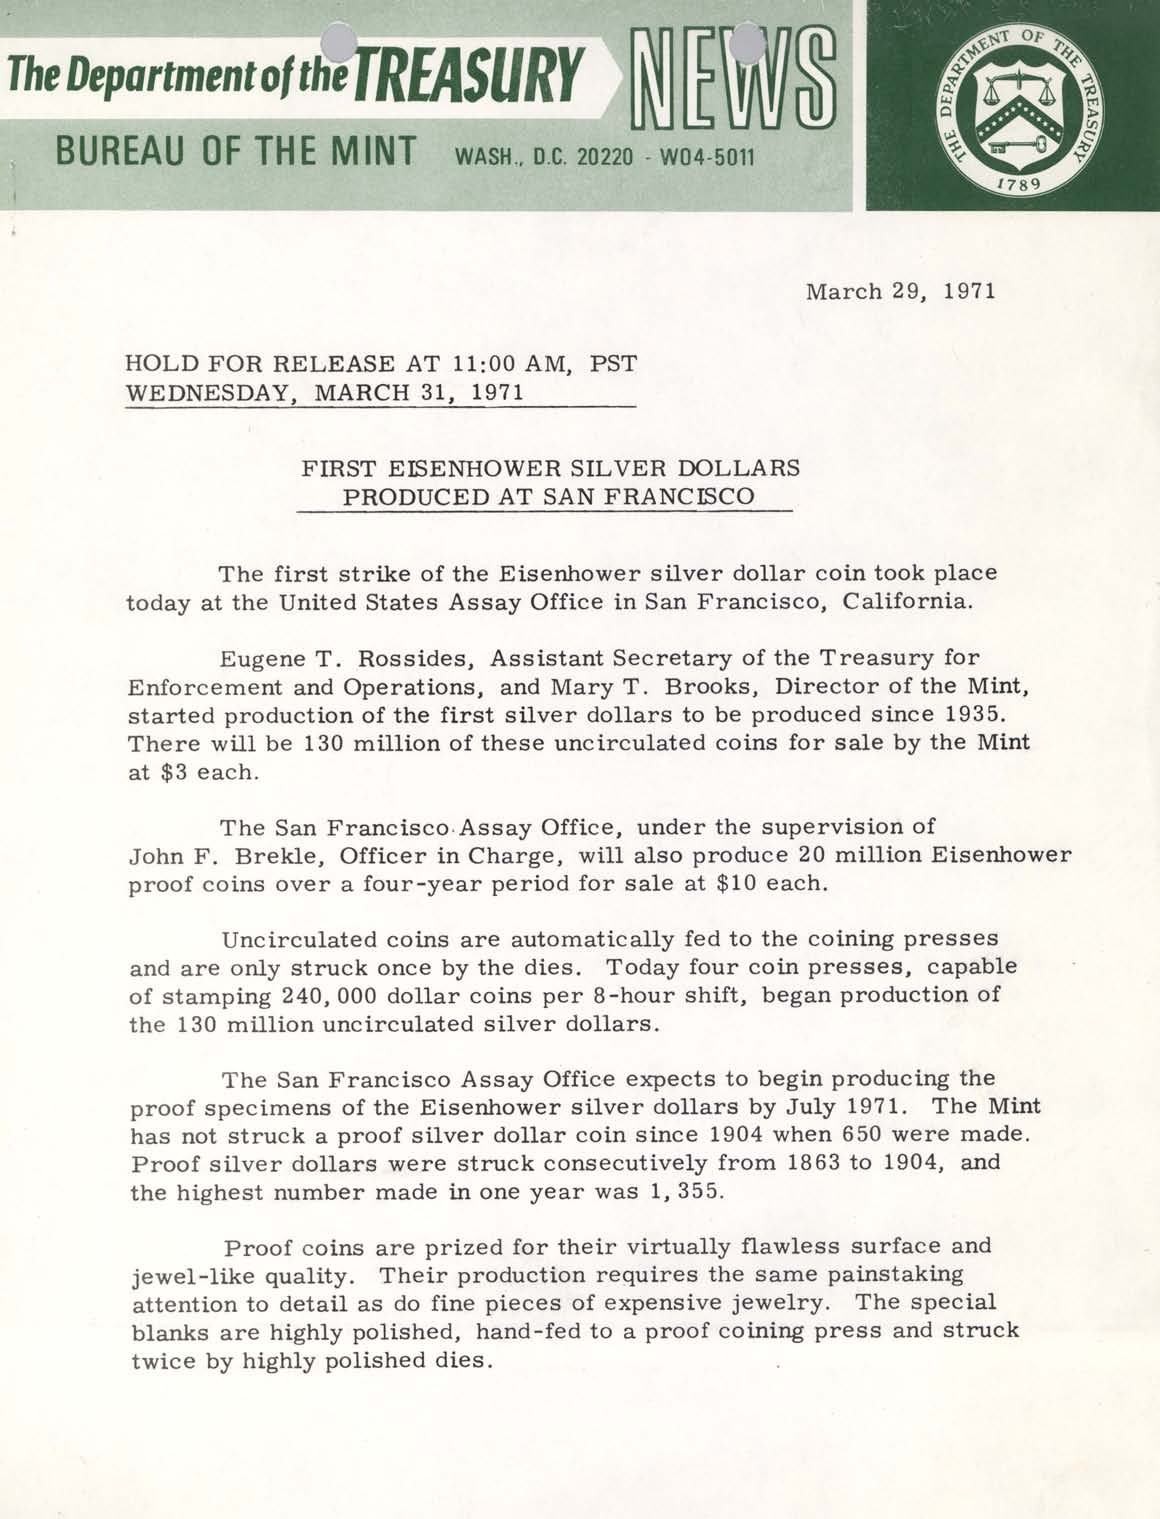 Historic Press Release: First Eisenhower Dollars Produced, Page 1